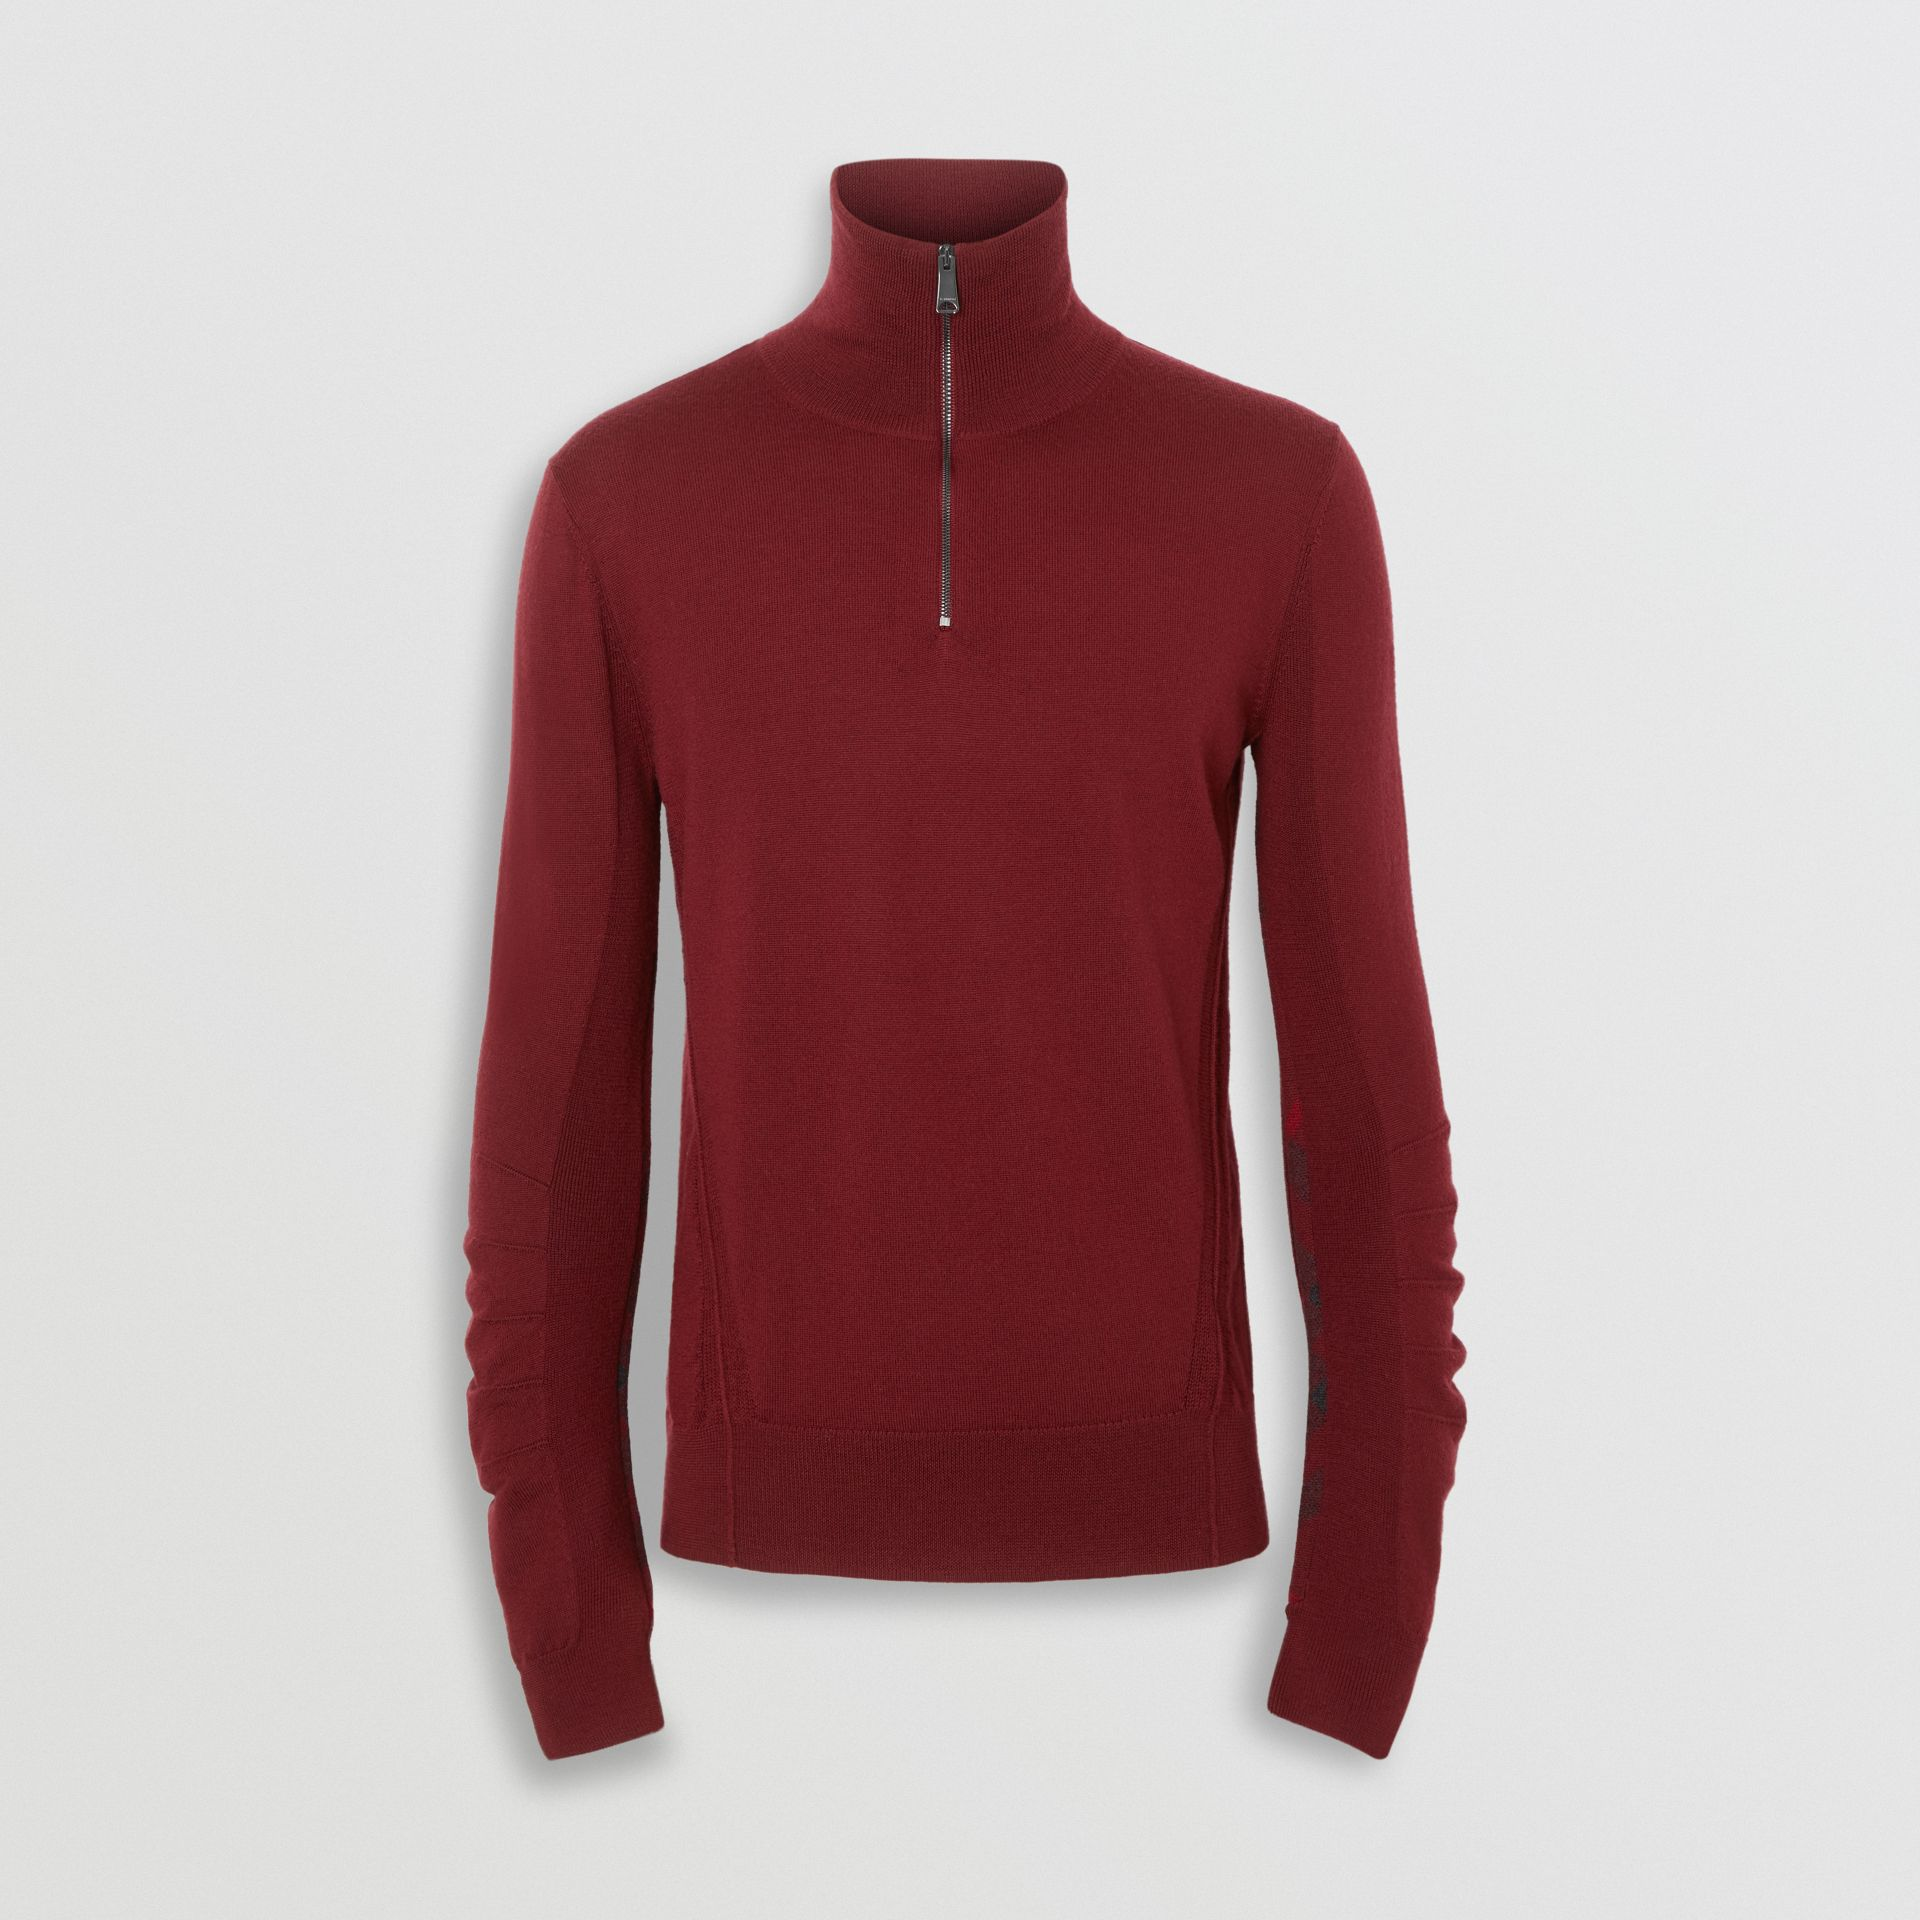 Merino Wool Half-zip Sweater in Burgundy - Men | Burberry - gallery image 3